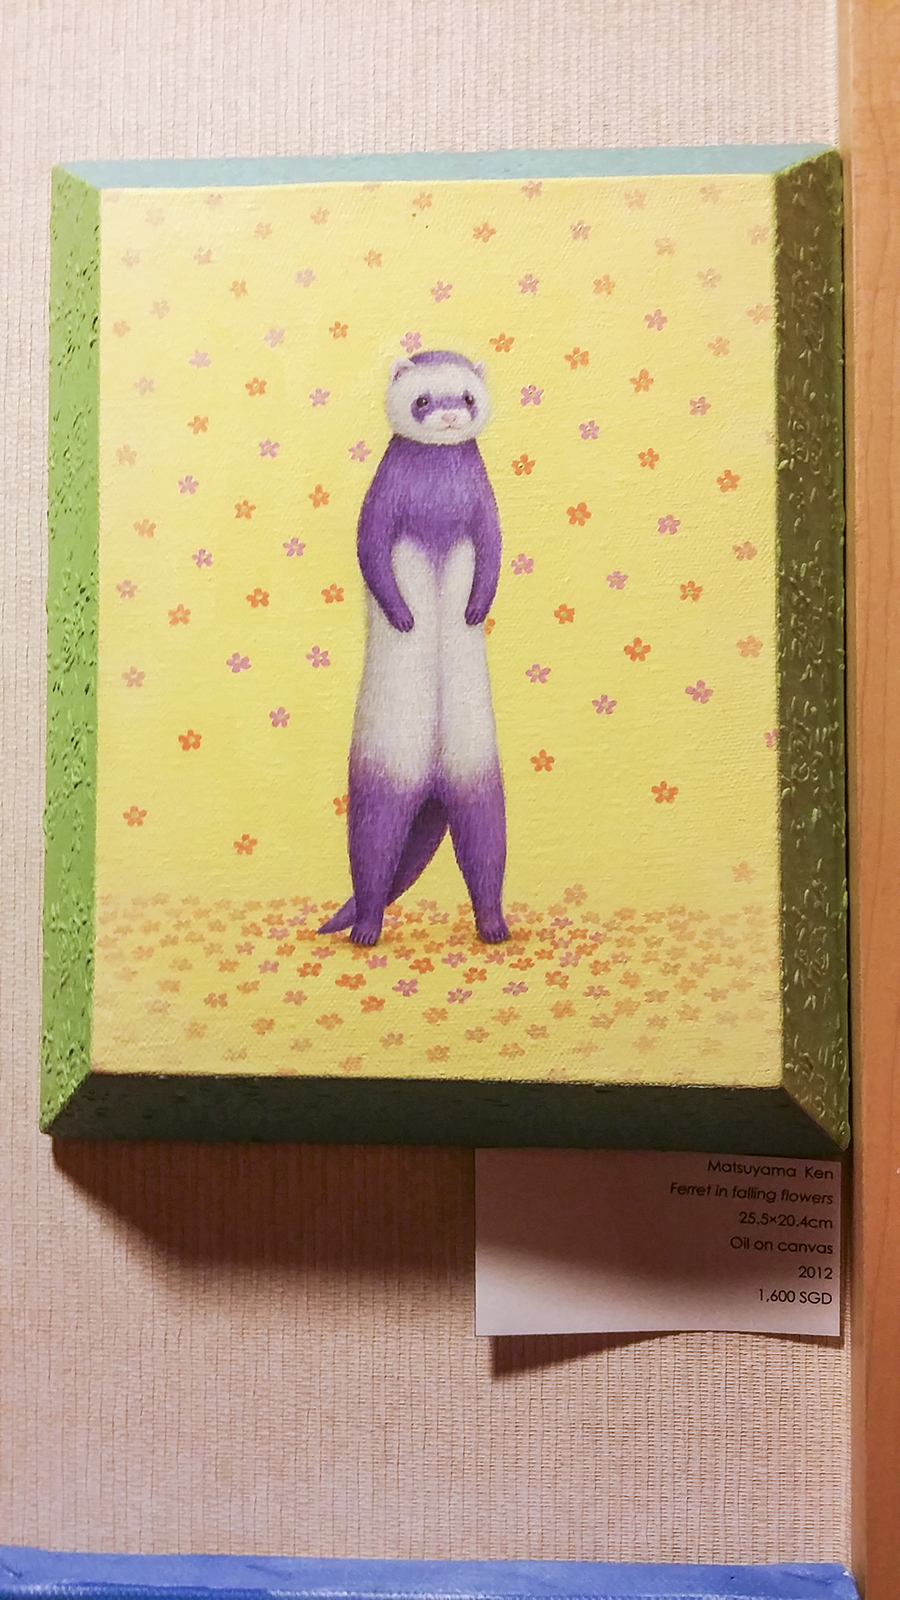 Ferret in Falling Flowers by Matsuyama Ken, oil on canvas at the Bank Art Fair 2014 in Singapore.